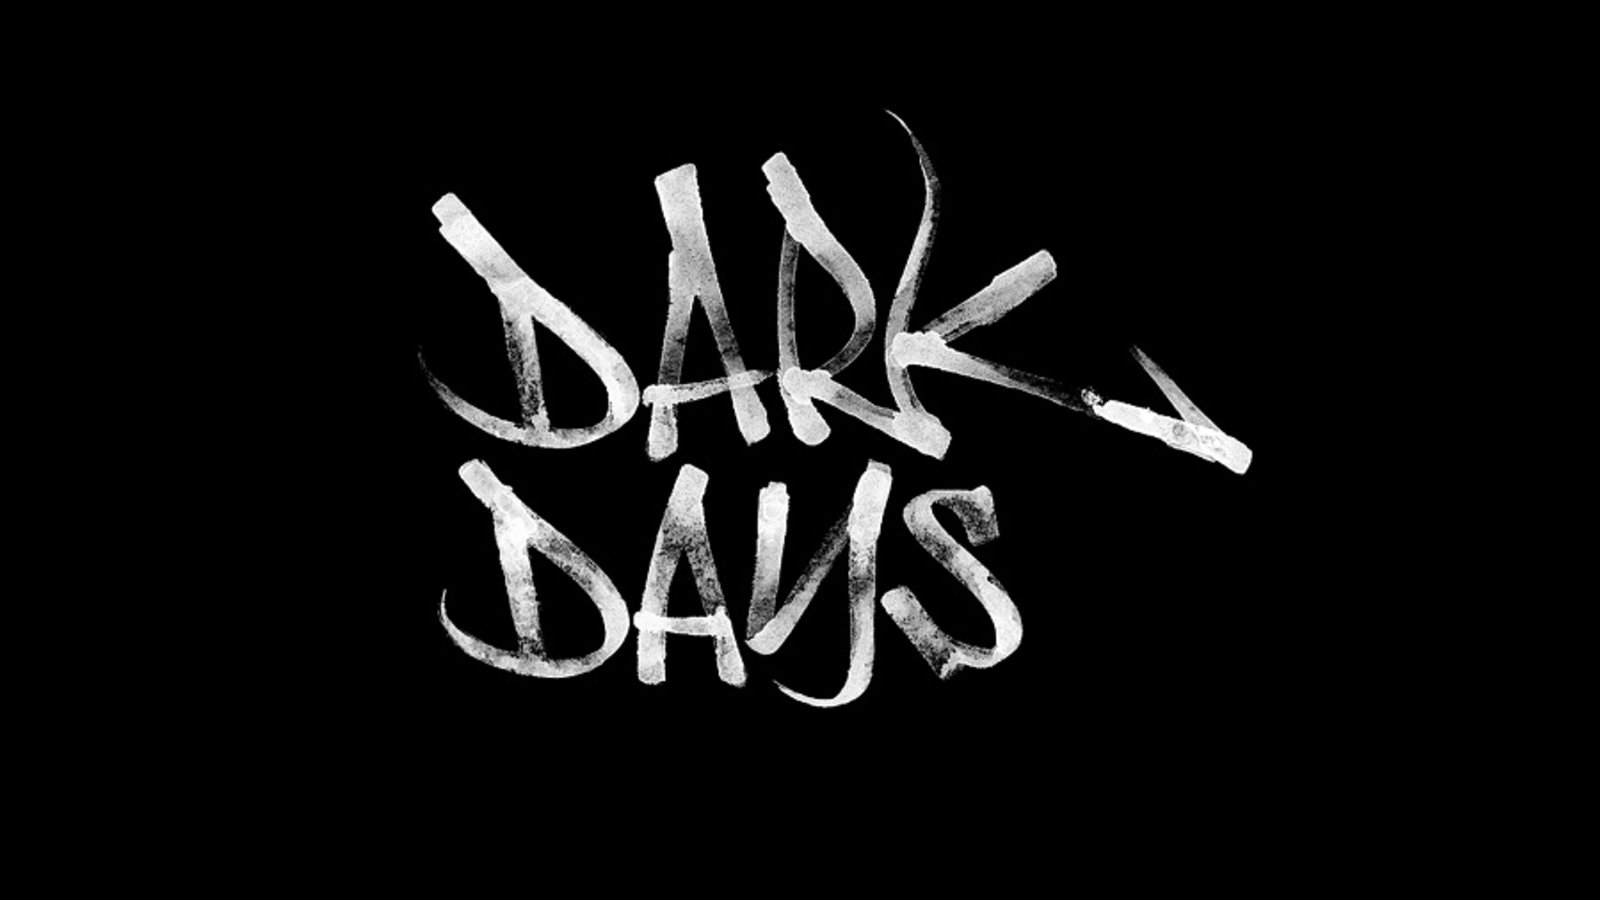 Dark Days - A Homeless Community Beneath the Subway Tunnels of NYC